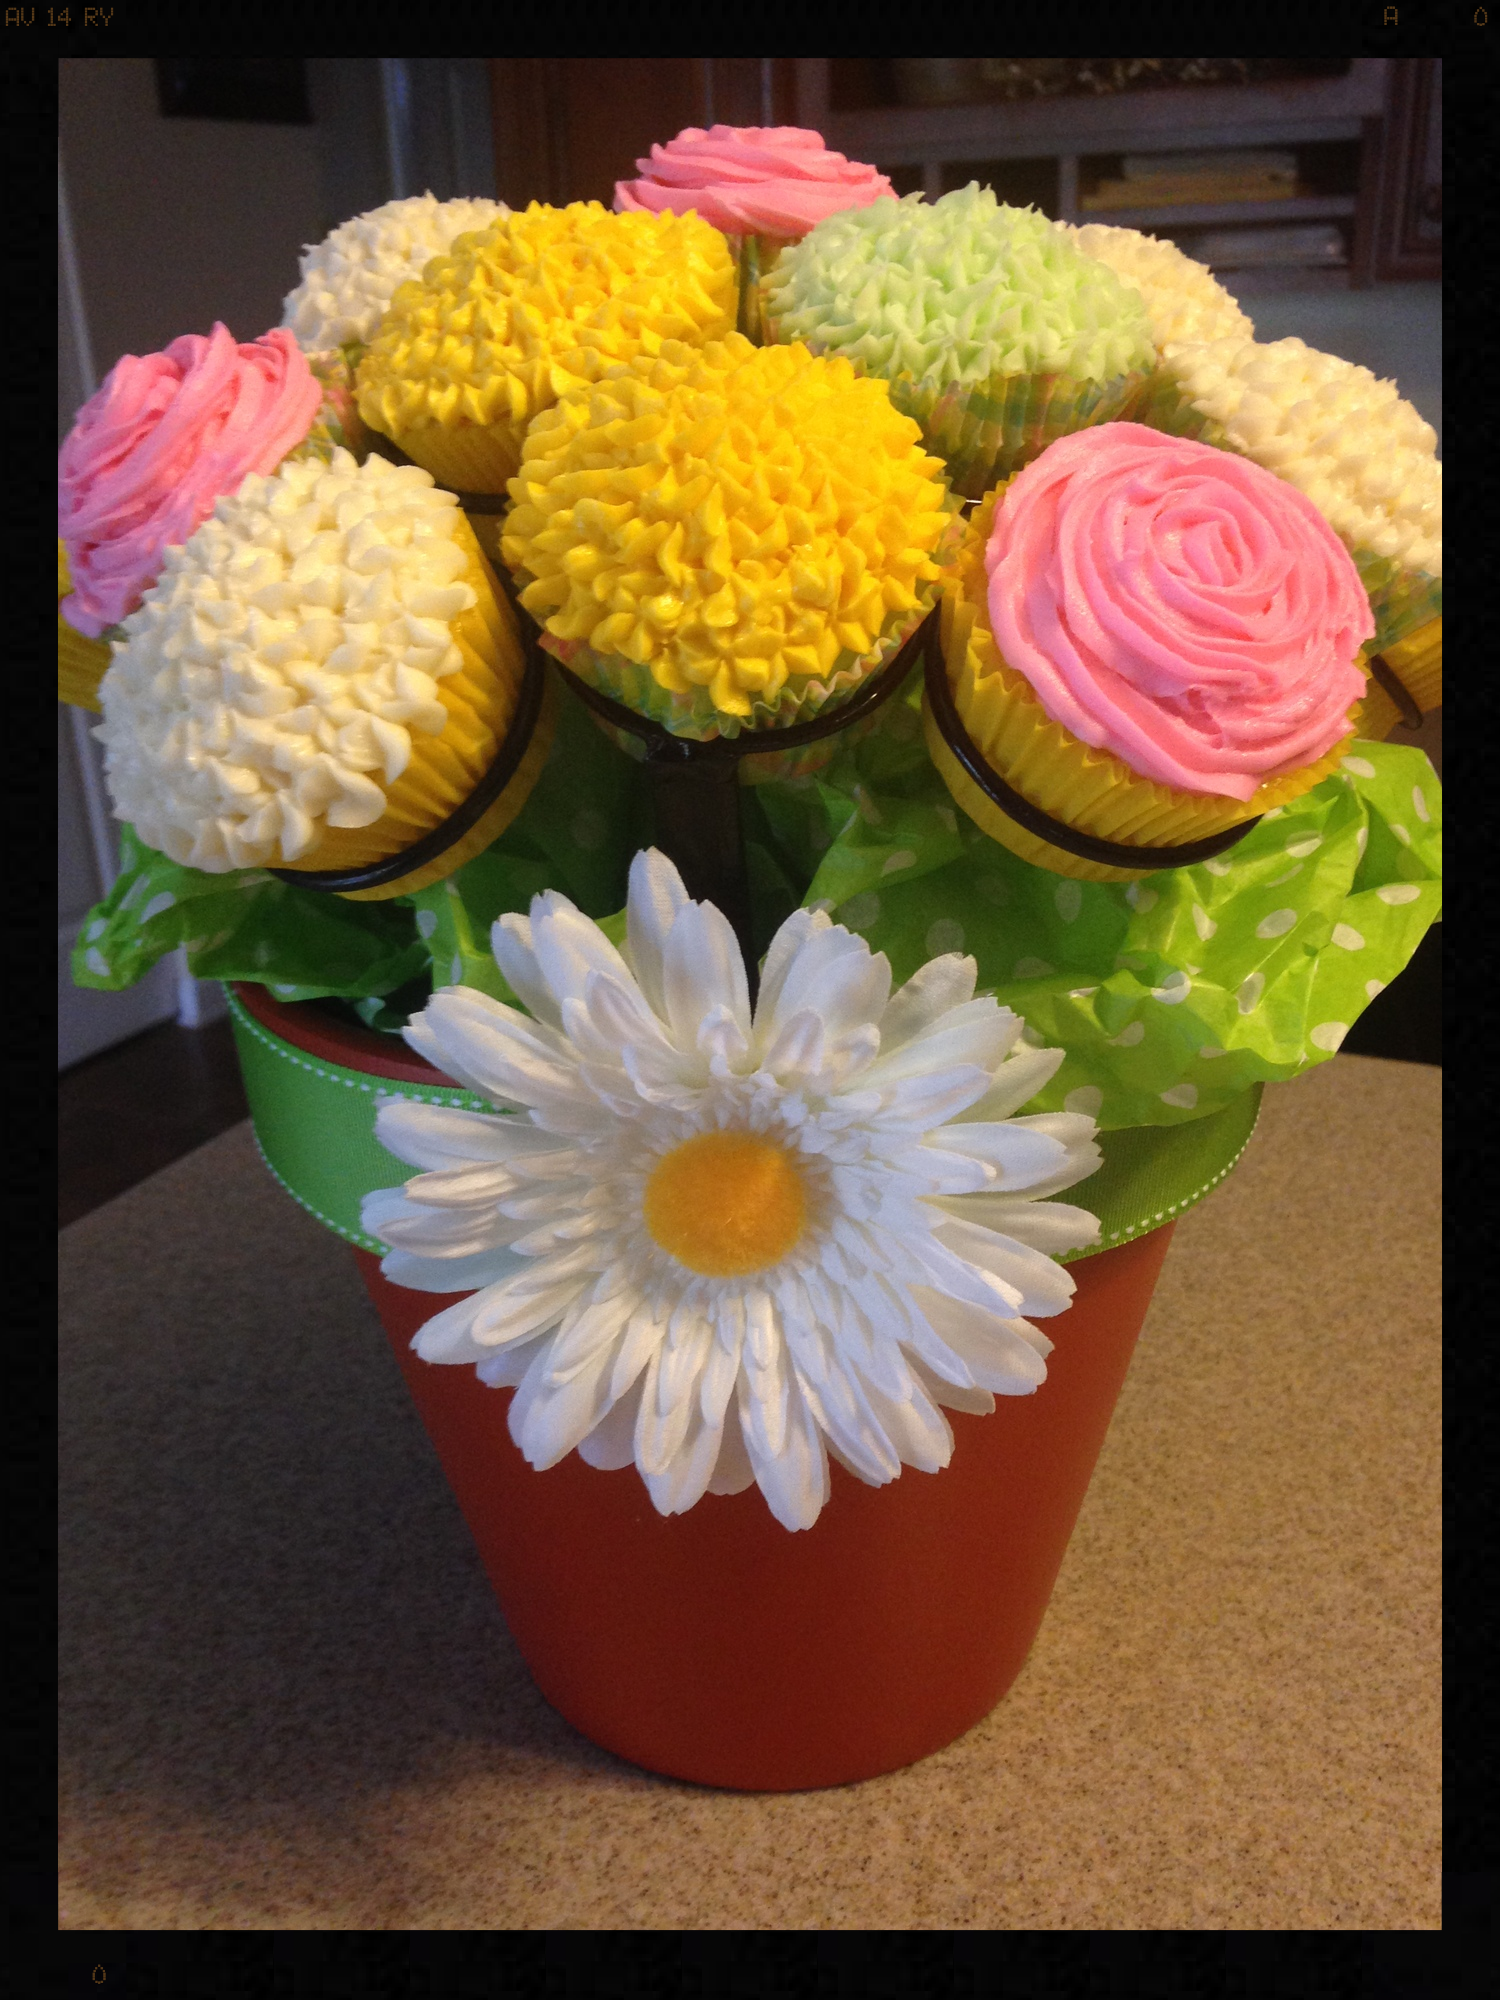 Oh my goodness Billie Jo! You weren't kidding when you told us you were making a cupcake bouquet! Your talent for decorating cupcakes is outstanding! Thank you for sharing your cupcake bouquet photo with us! I love this bouquet!